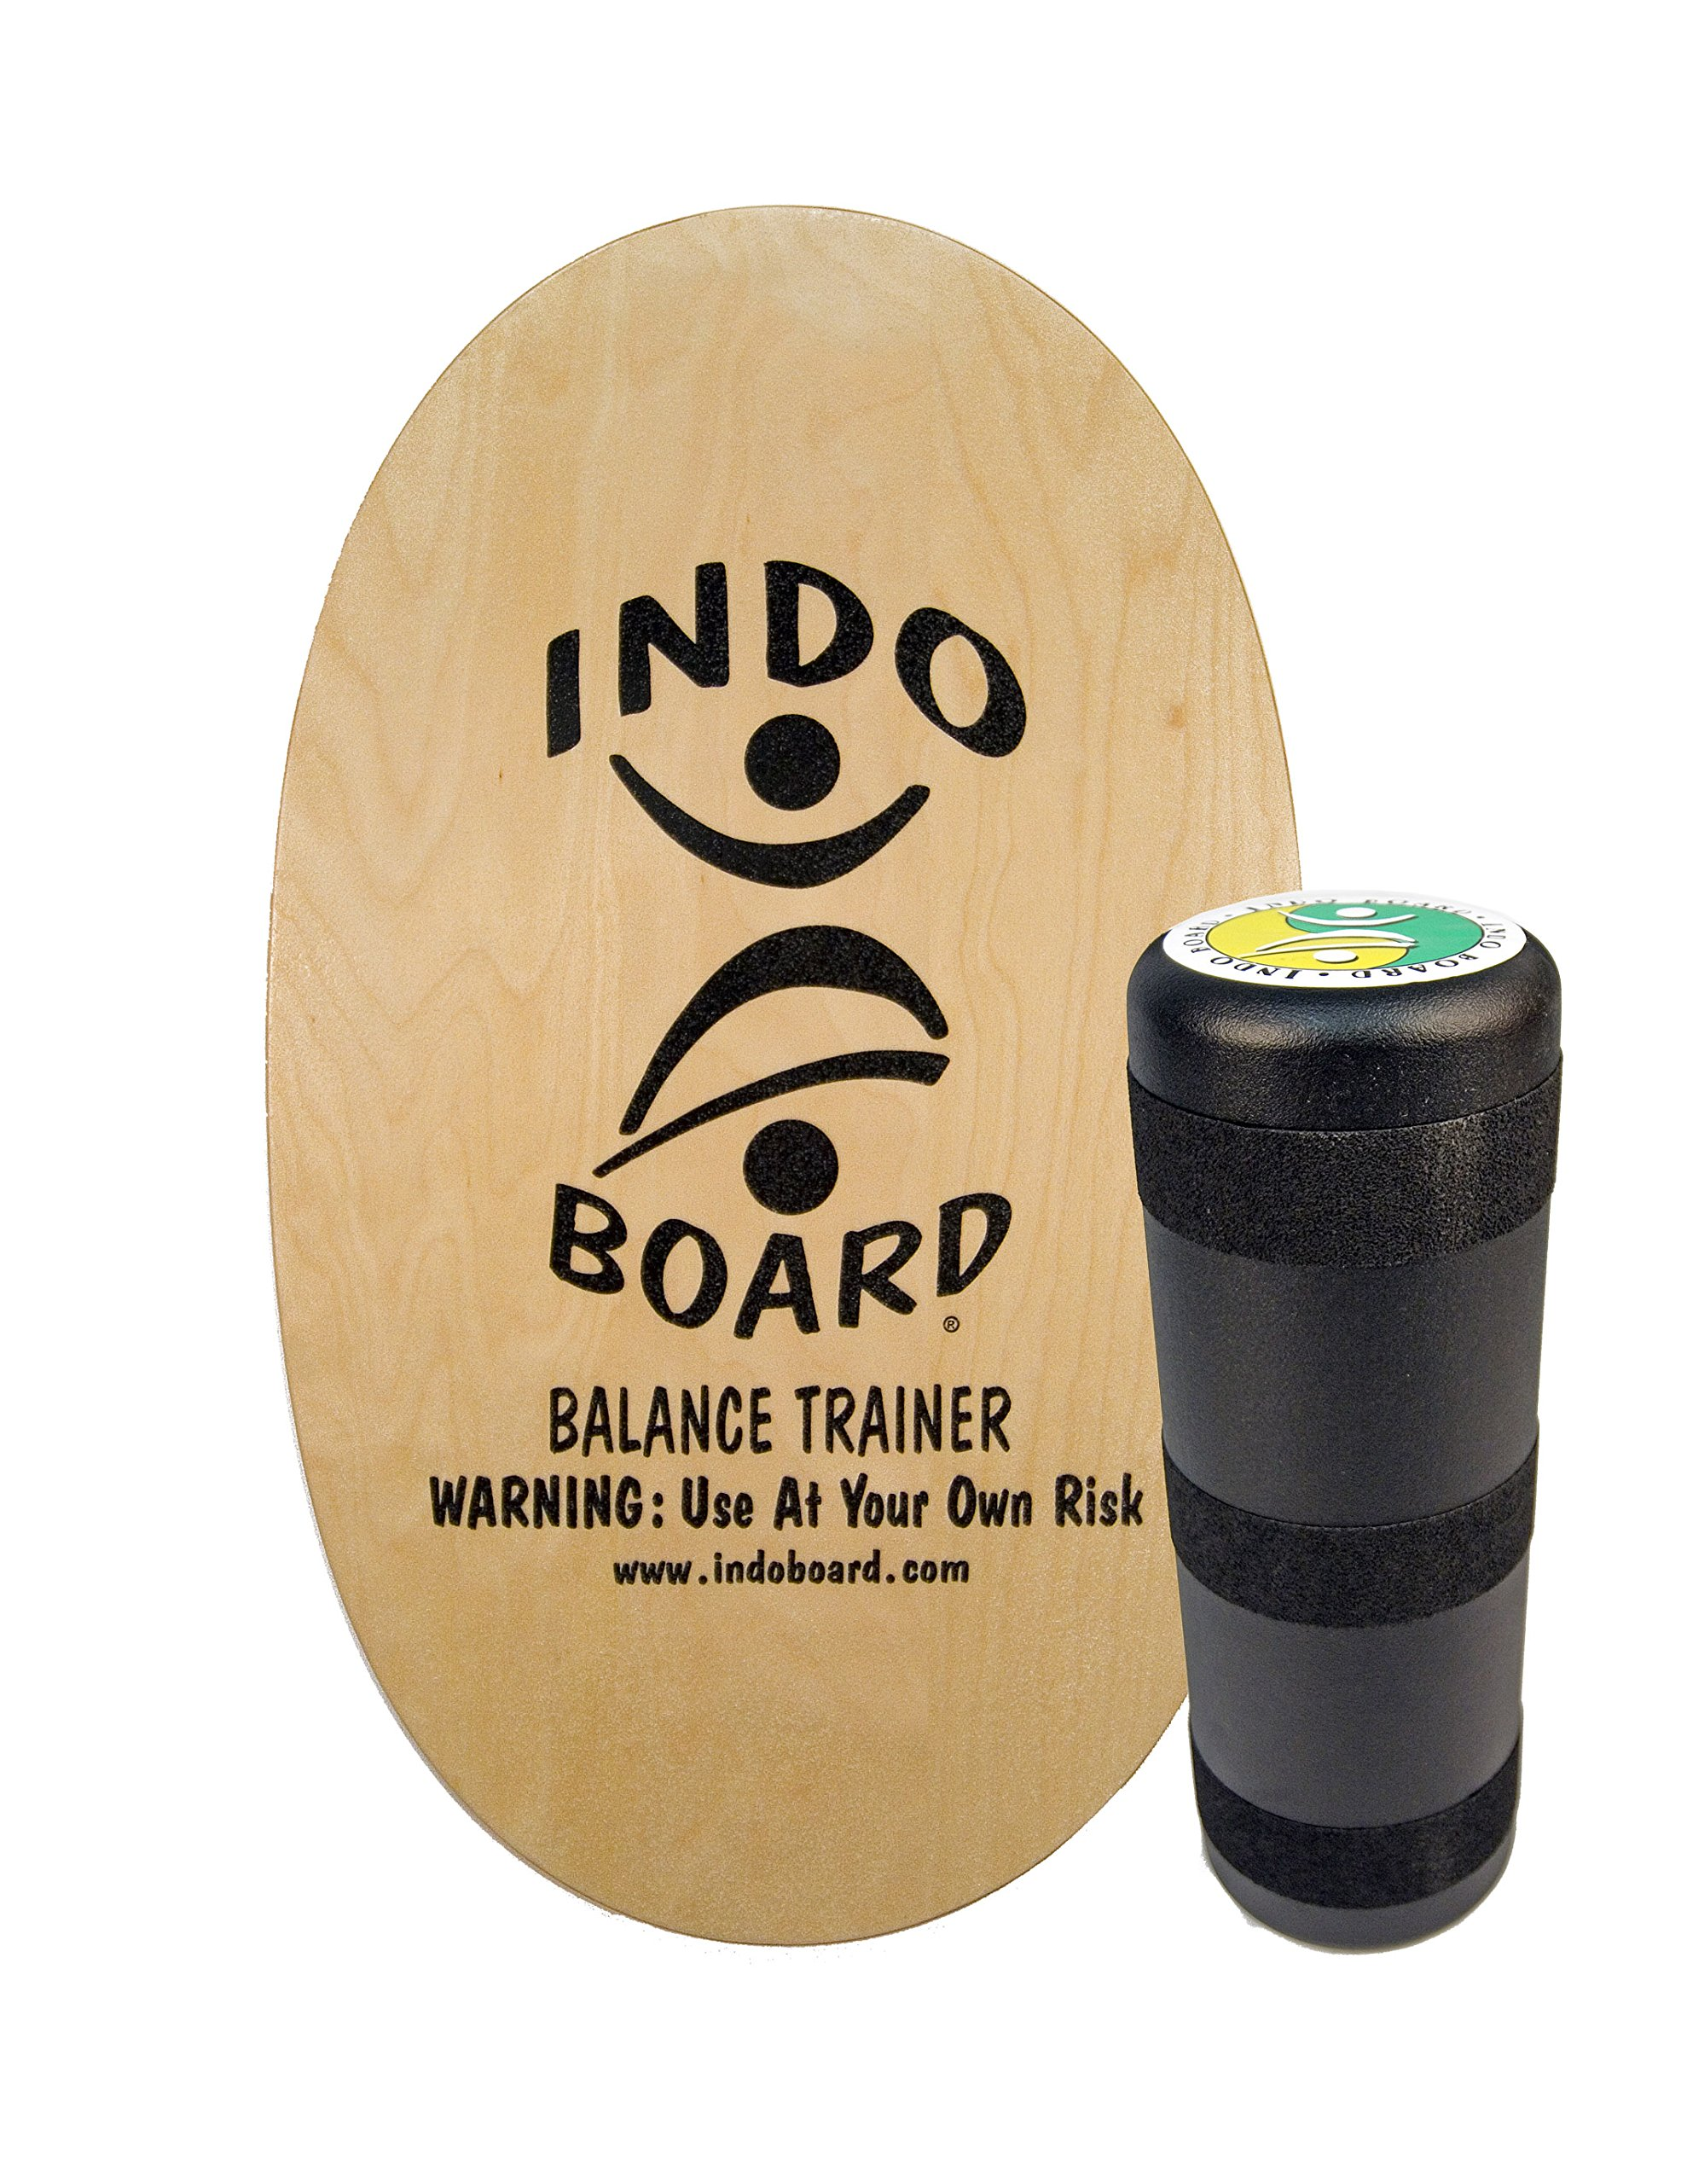 "INDO BOARD Original Balance Board with 6.5"" Roller and 30"" X 18"" Non-Slip Deck – Natural Wood Design by INDO BOARD (Image #1)"